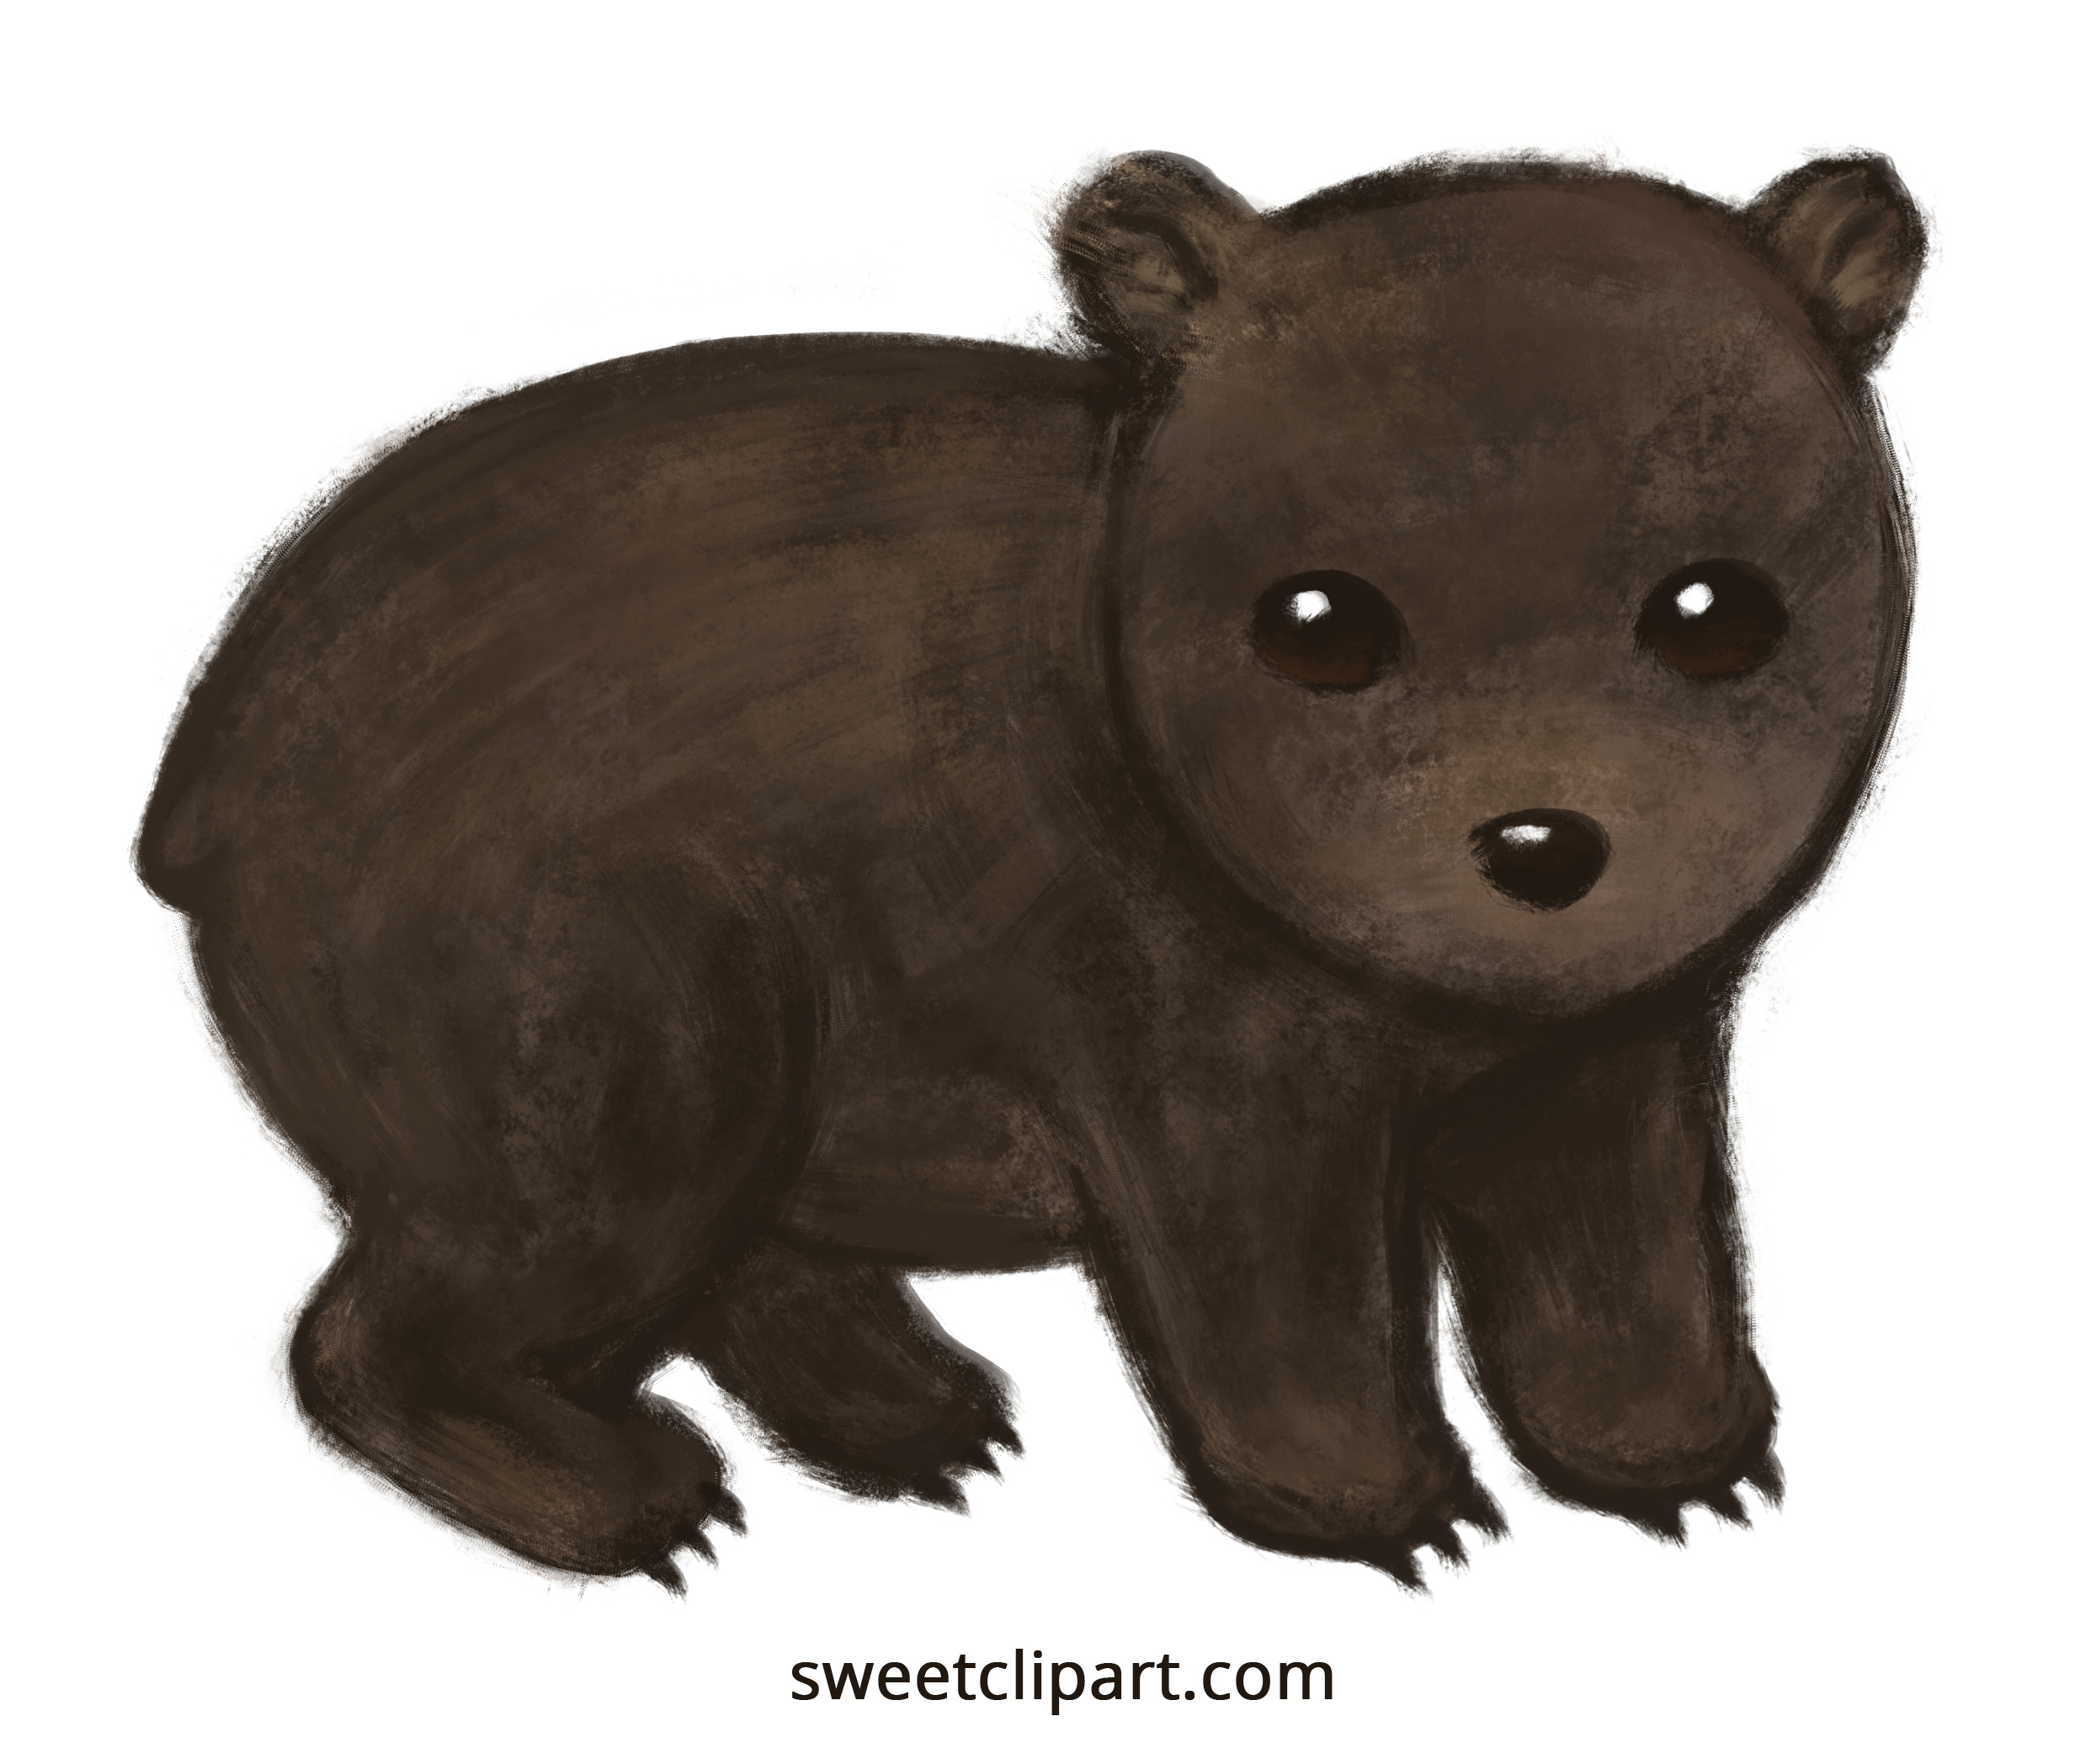 Wombat clipart #2, Download drawings